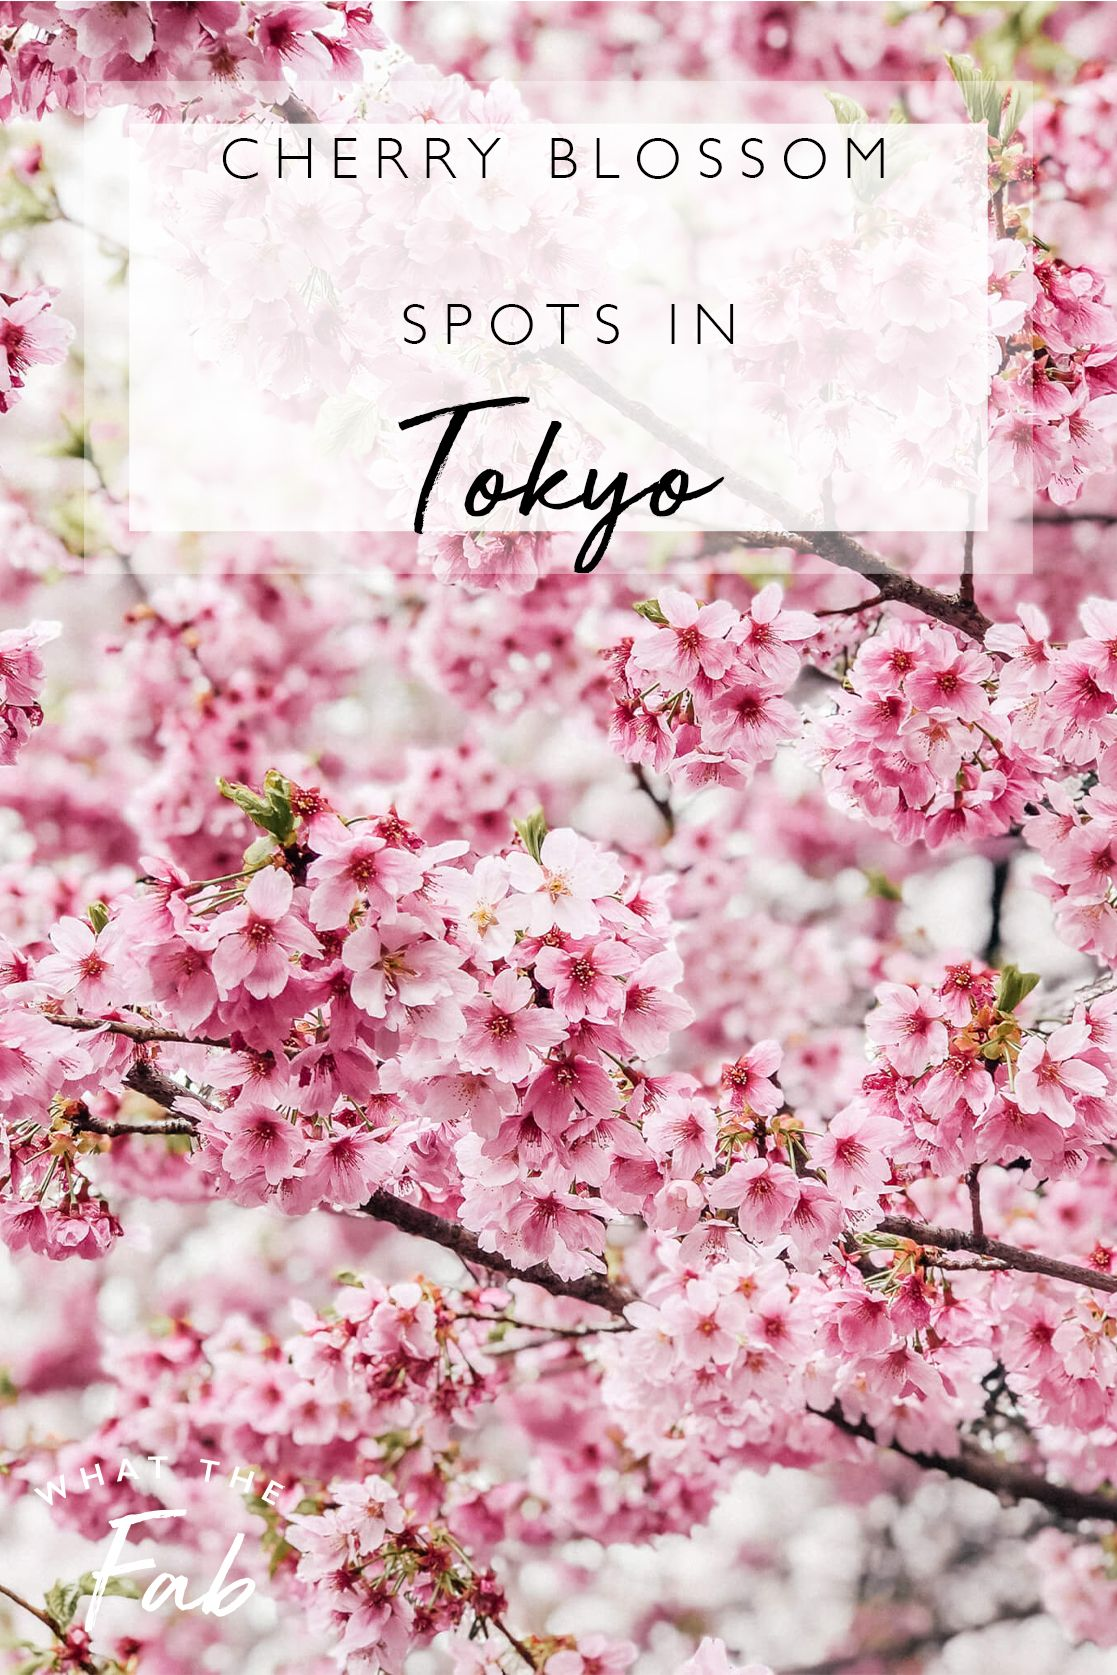 Best Places To View Cherry Blossoms In Tokyo 2021 Japan Travel Destinations Travel Destinations Asia Japan Travel Guide